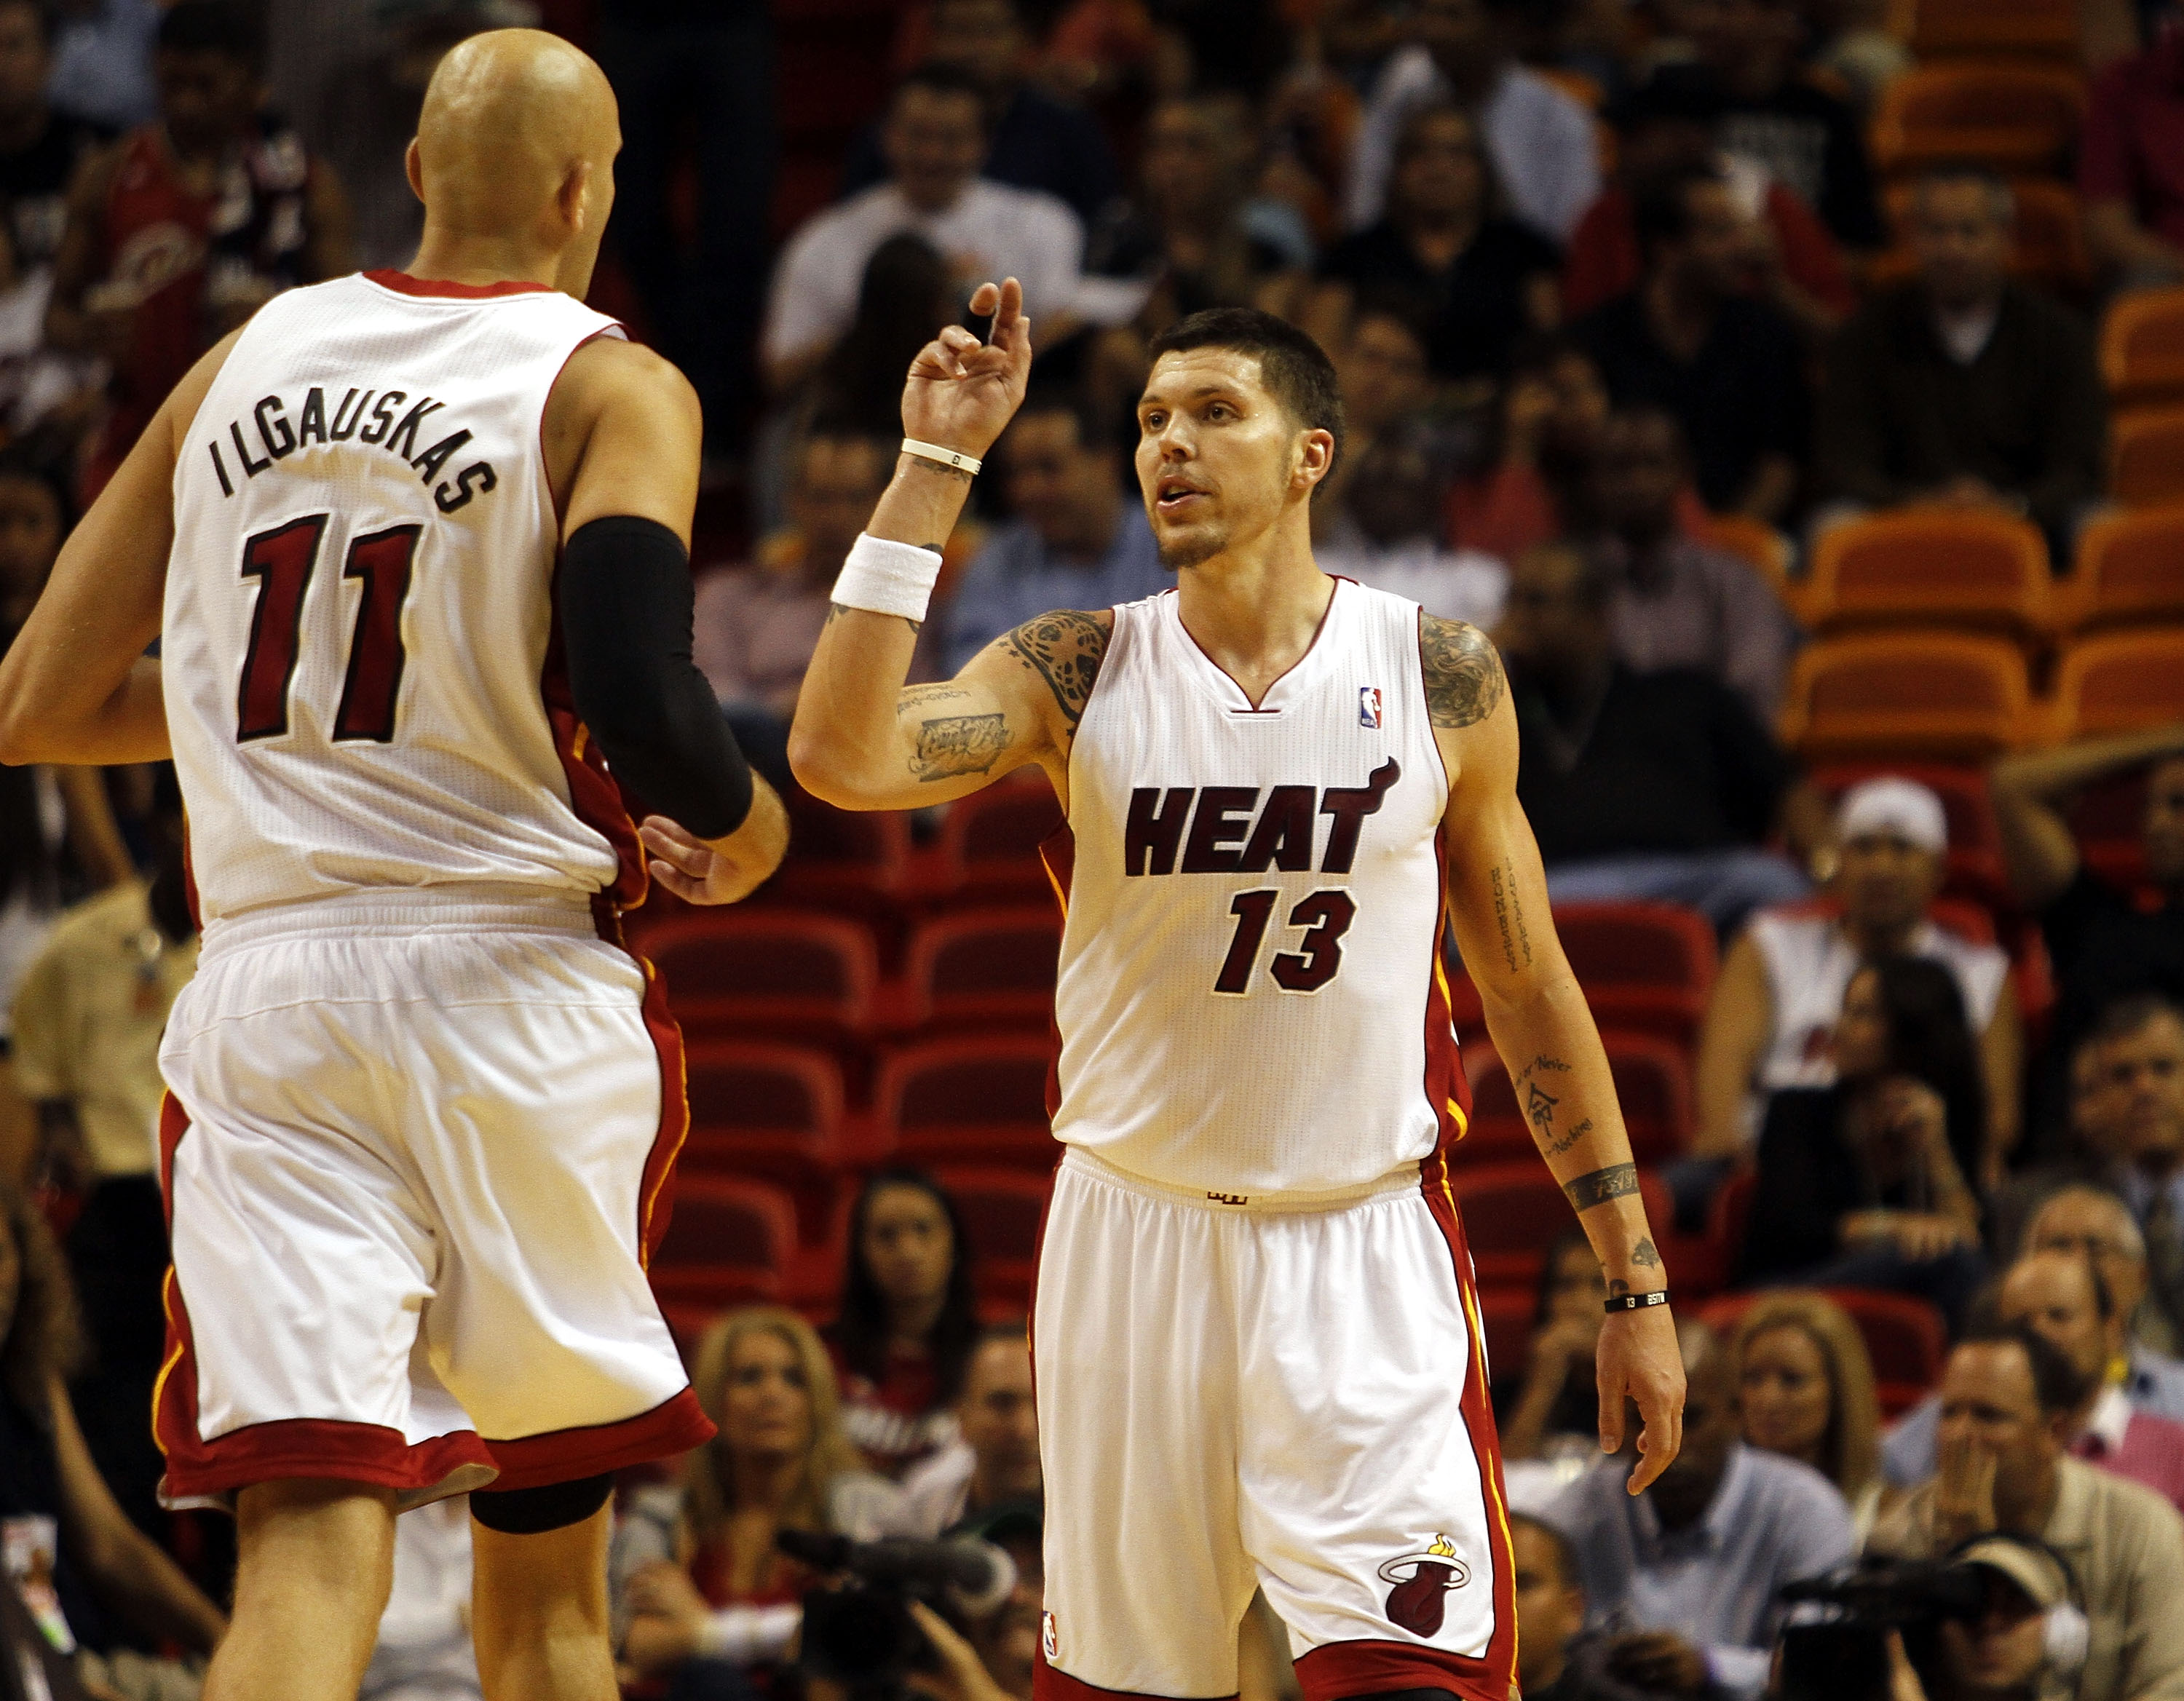 MIAMI - OCTOBER 18:  Center Zydrunas Ilgauskas #11 and Forward Mike Miller #13 of the Miami Heat celebrate against the Charlotte Bobcats on October 18, 2010 at American Airlines Arena in Miami, Florida. NOTE TO USER: User expressly acknowledges and agrees